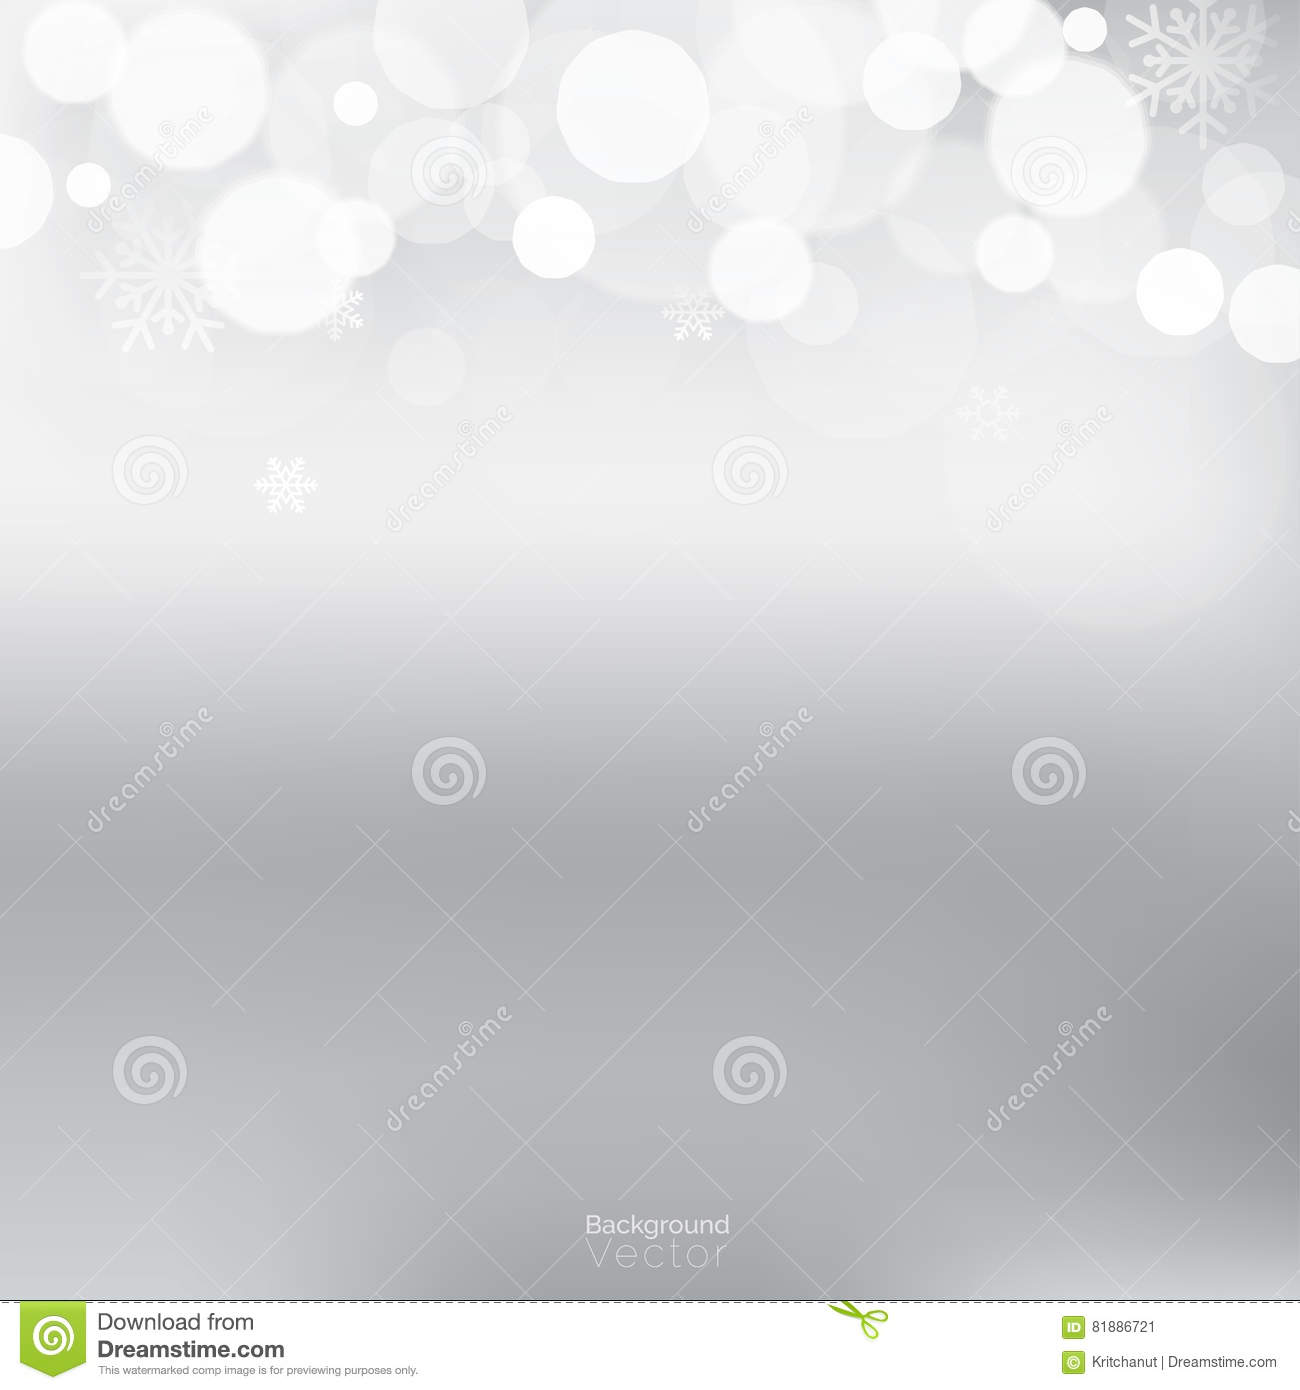 white bokeh and snowflakes border design on gradient light gray background christmas and new year theme